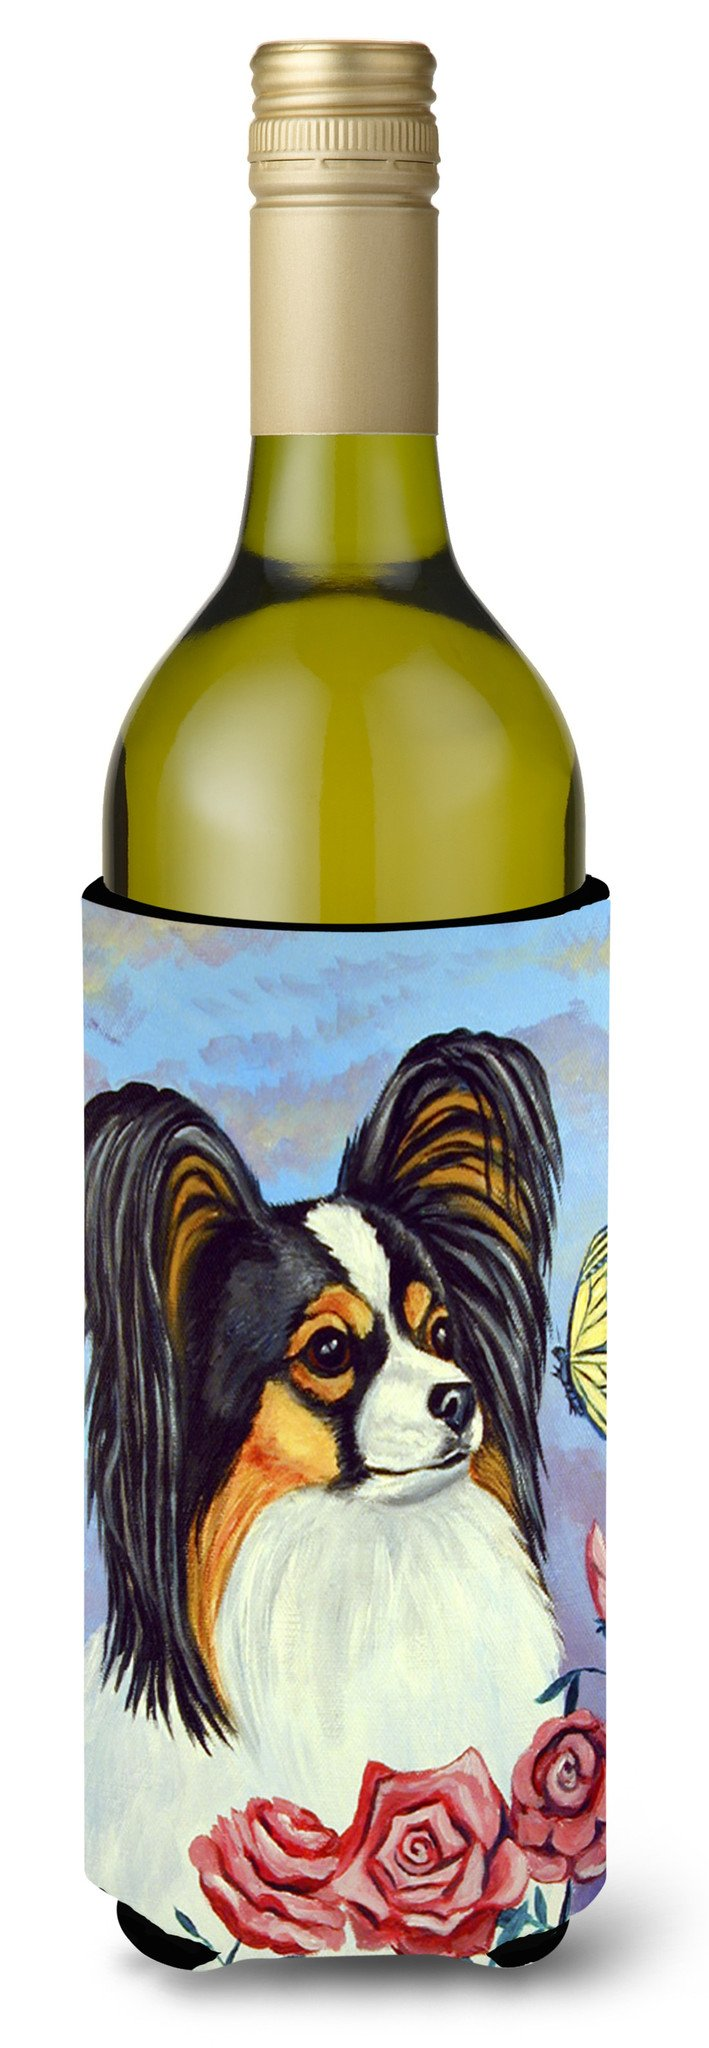 Buy this Papillon Yellow Butterfly Wine Bottle Beverage Insulator Beverage Insulator Hugger